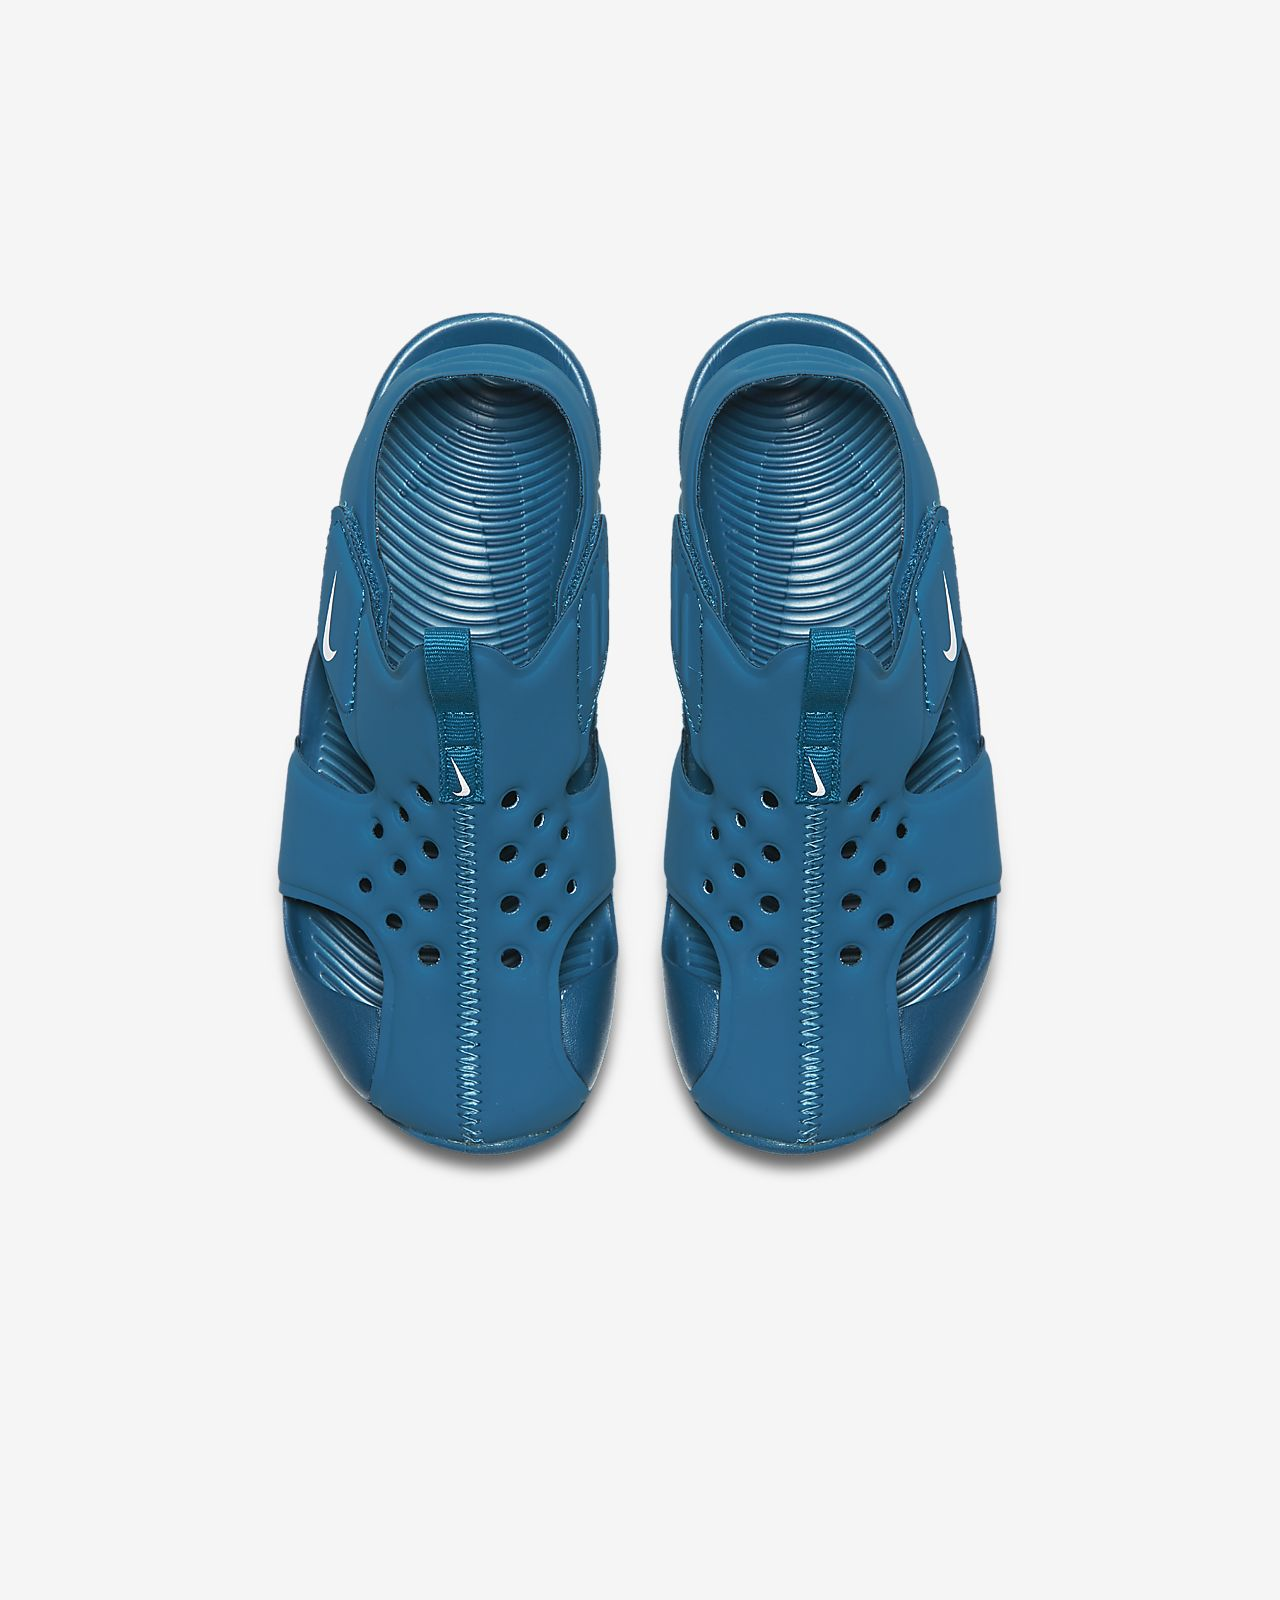 de43470cbcca18 ... cheapest nike sunray protect 2 younger kids sandal 0dcf8 9f8bc